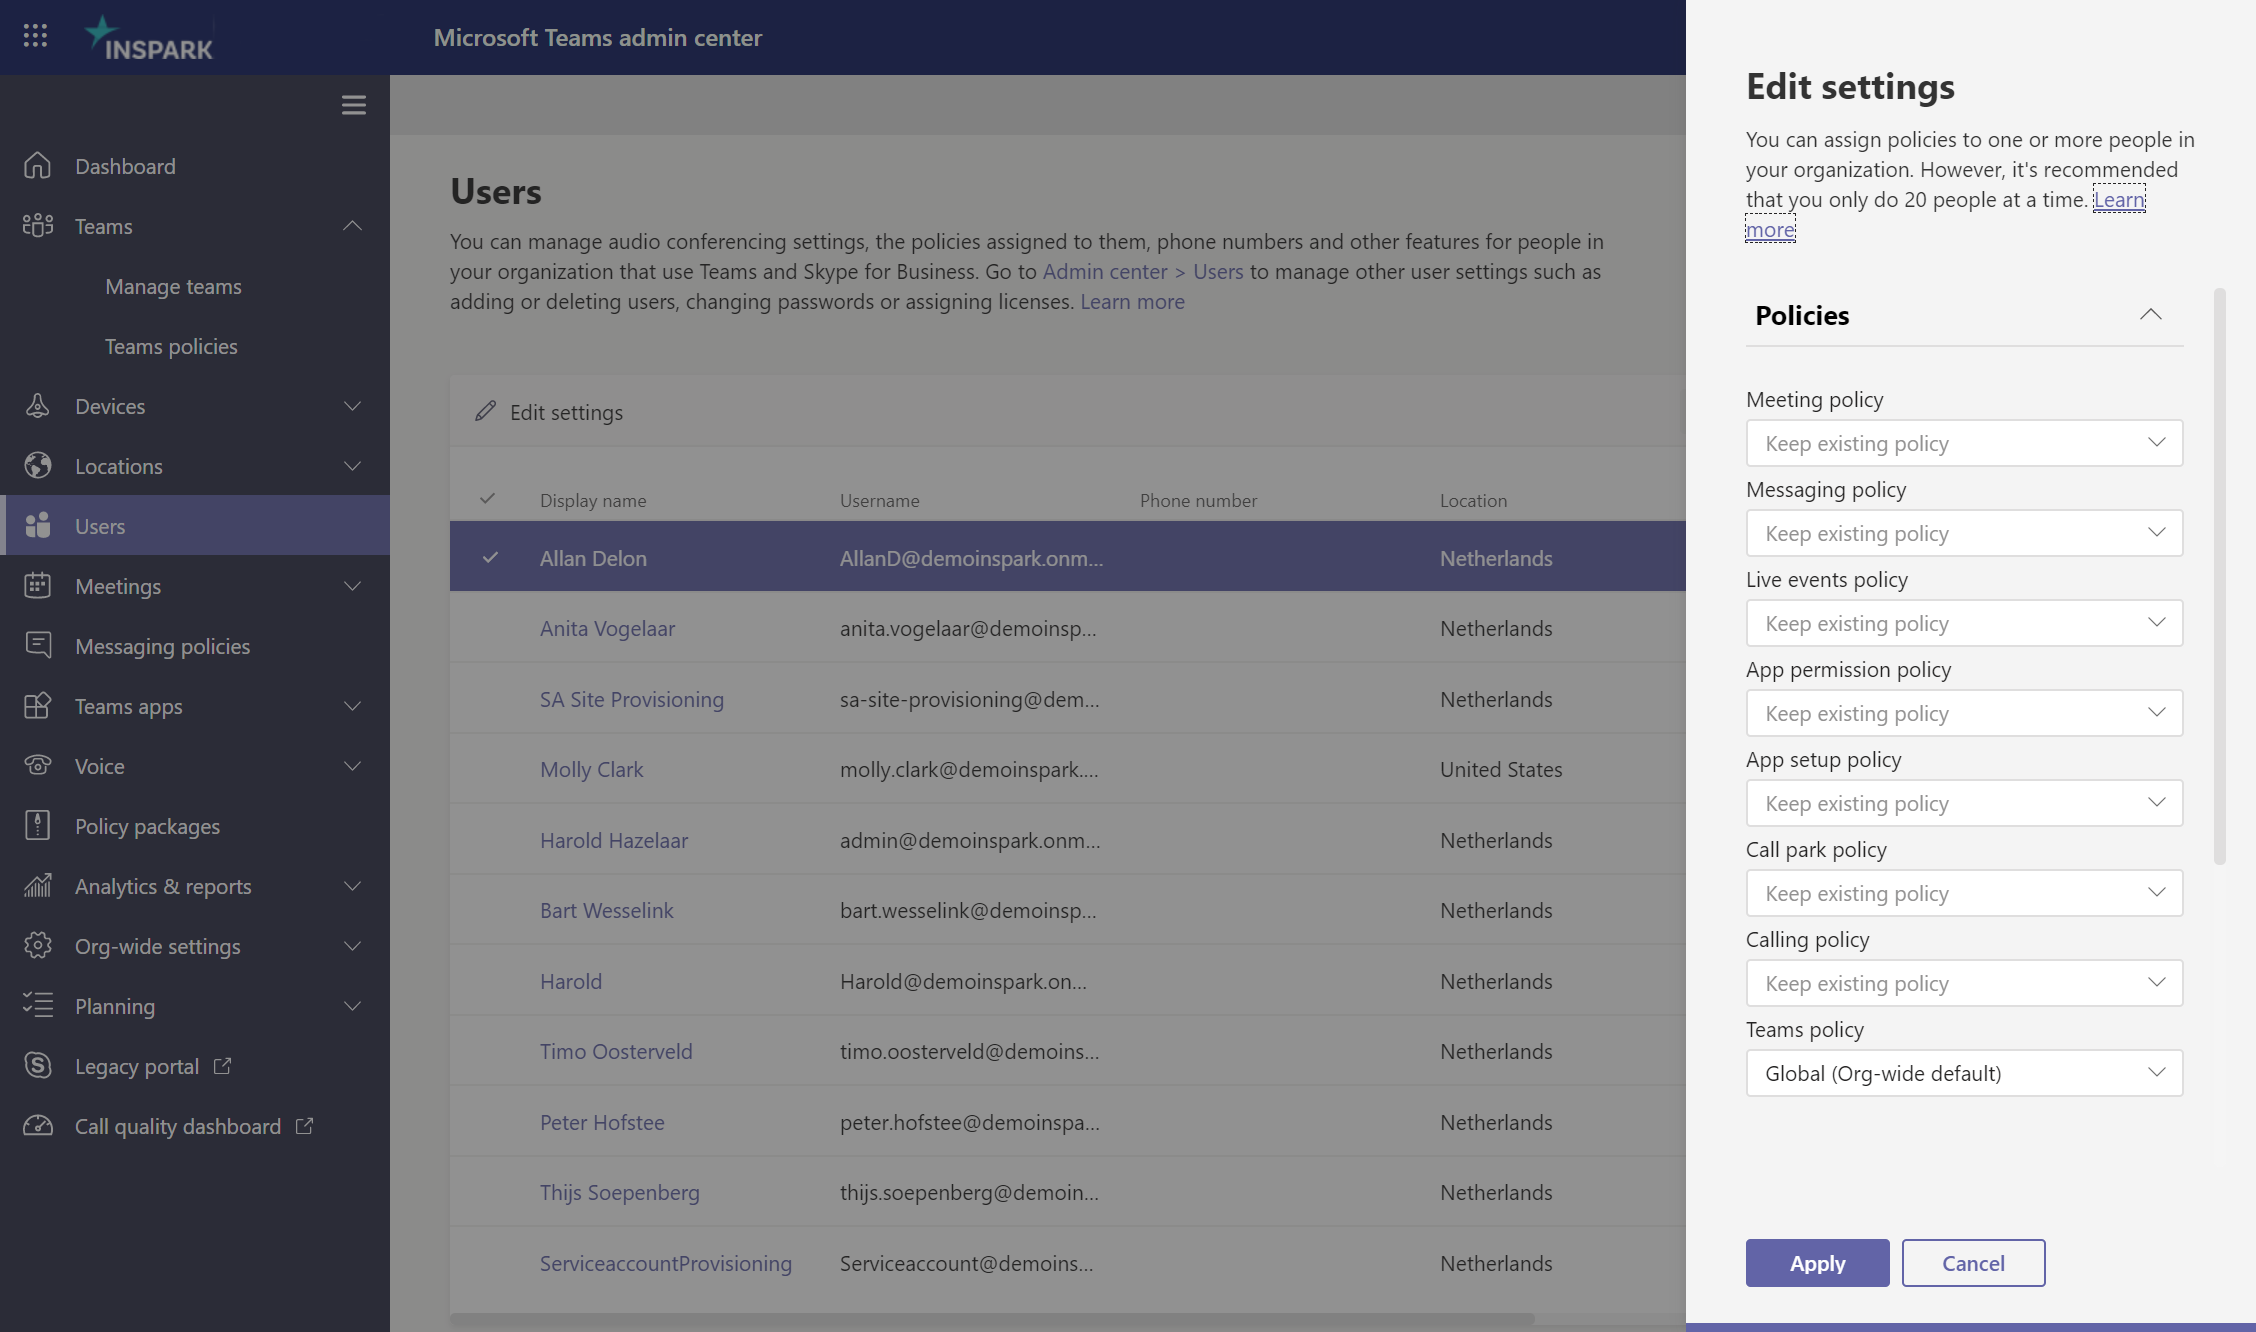 Policies you can apply in the Microsoft Teams admin center.